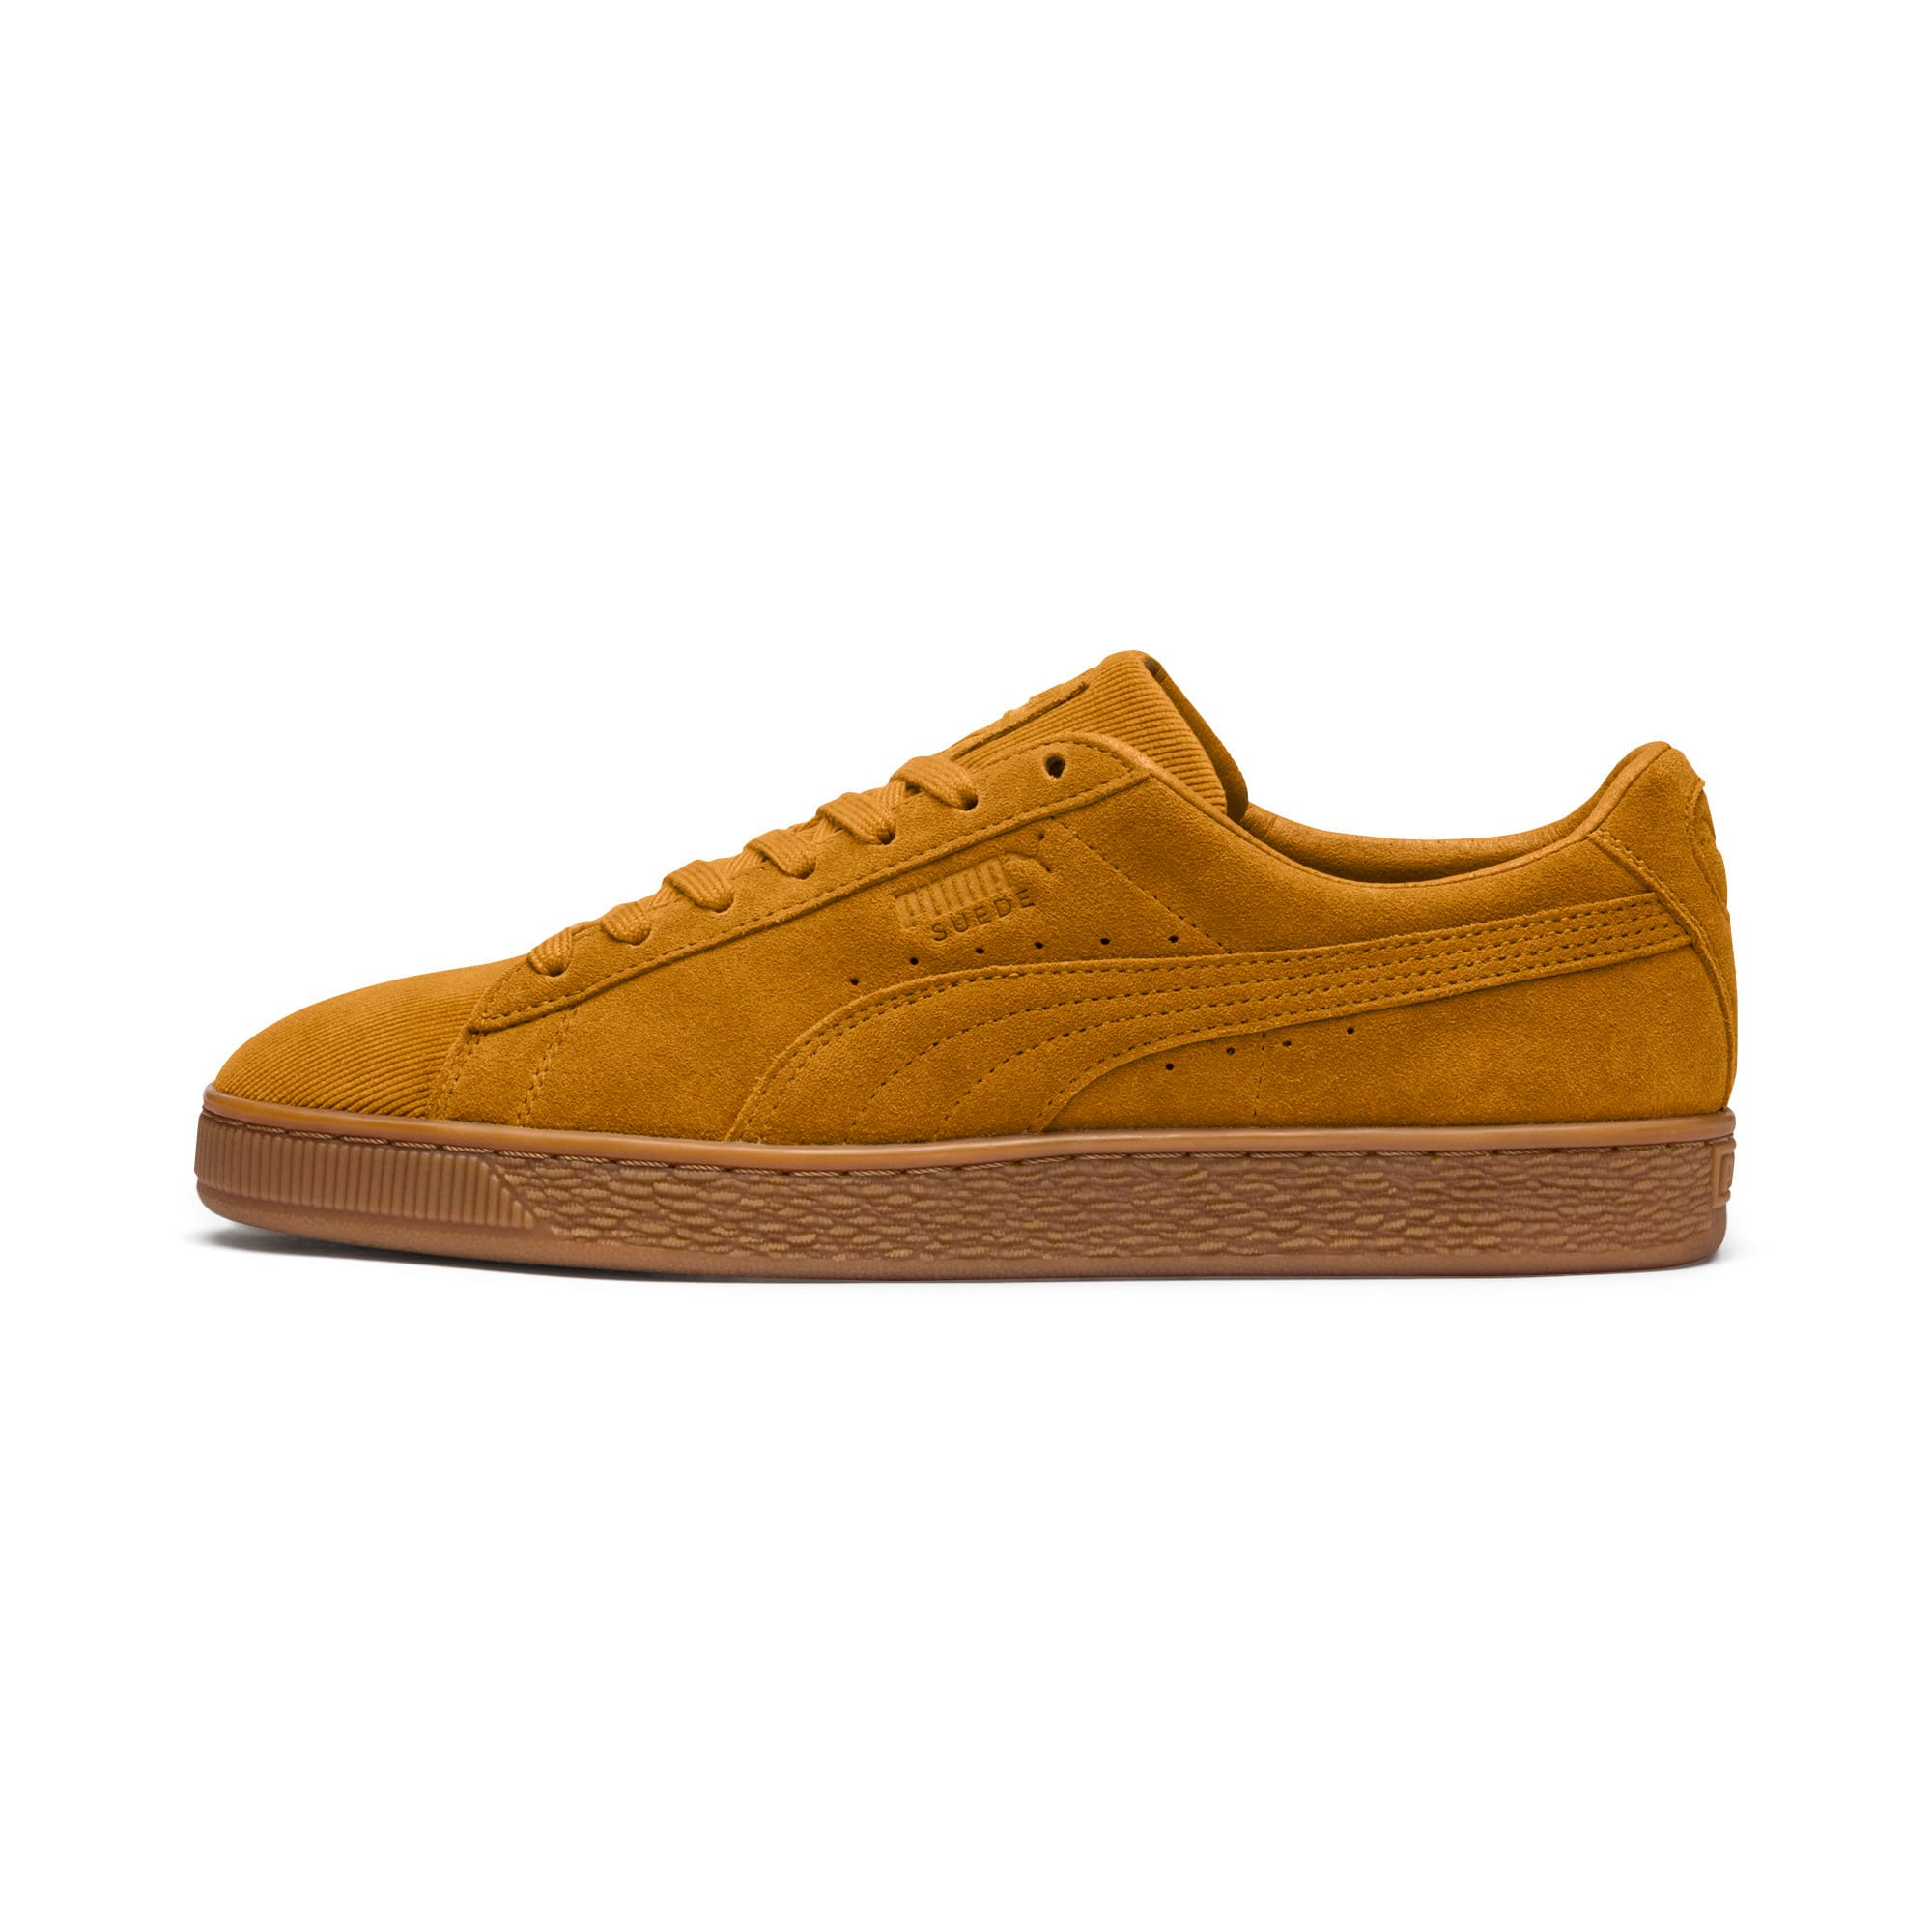 Thumbnail 1 of Suede Classic Pincord Trainers, Buckthorn Brwn-Buckthorn Brw, medium-IND